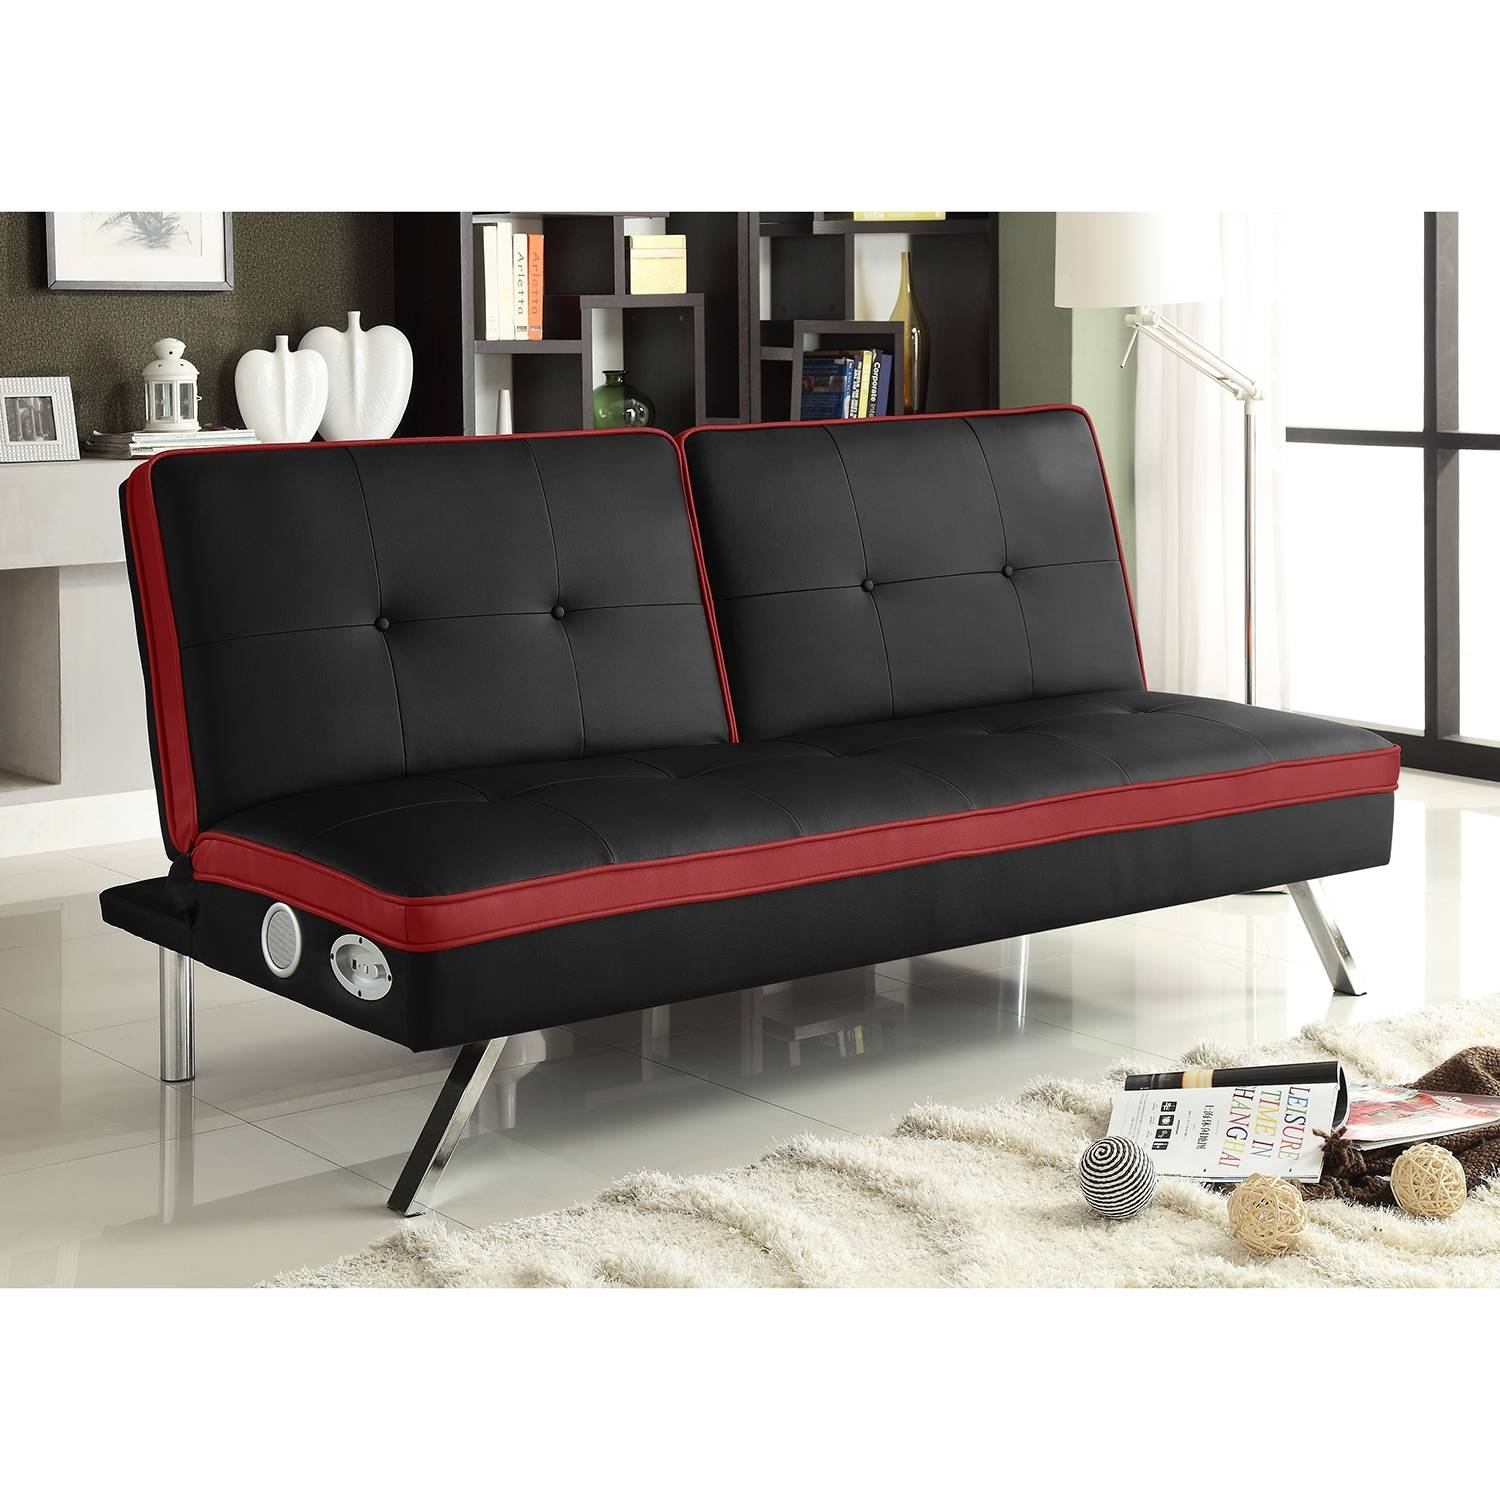 Cheap Futons Small : Roof, Fence & Futons - Choosing Cheap Futons regarding Small Black Futon Sofa Beds (Image 4 of 15)